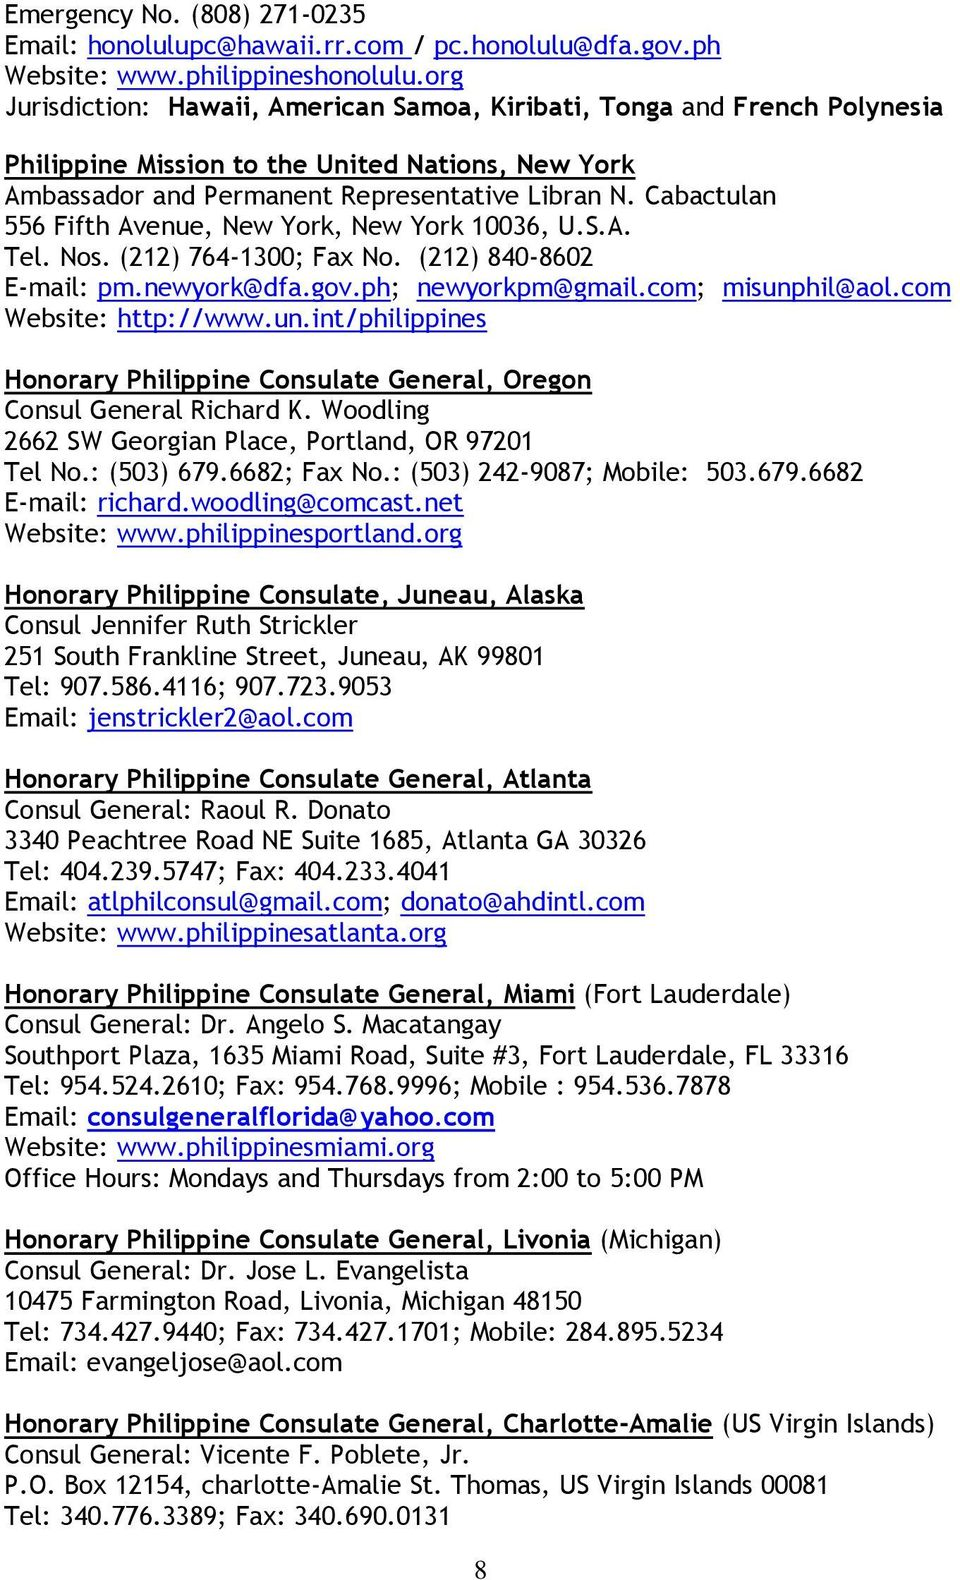 CONSULAR SERVICE GUIDE AND TELEPHONE DIRECTORY MAY 2013